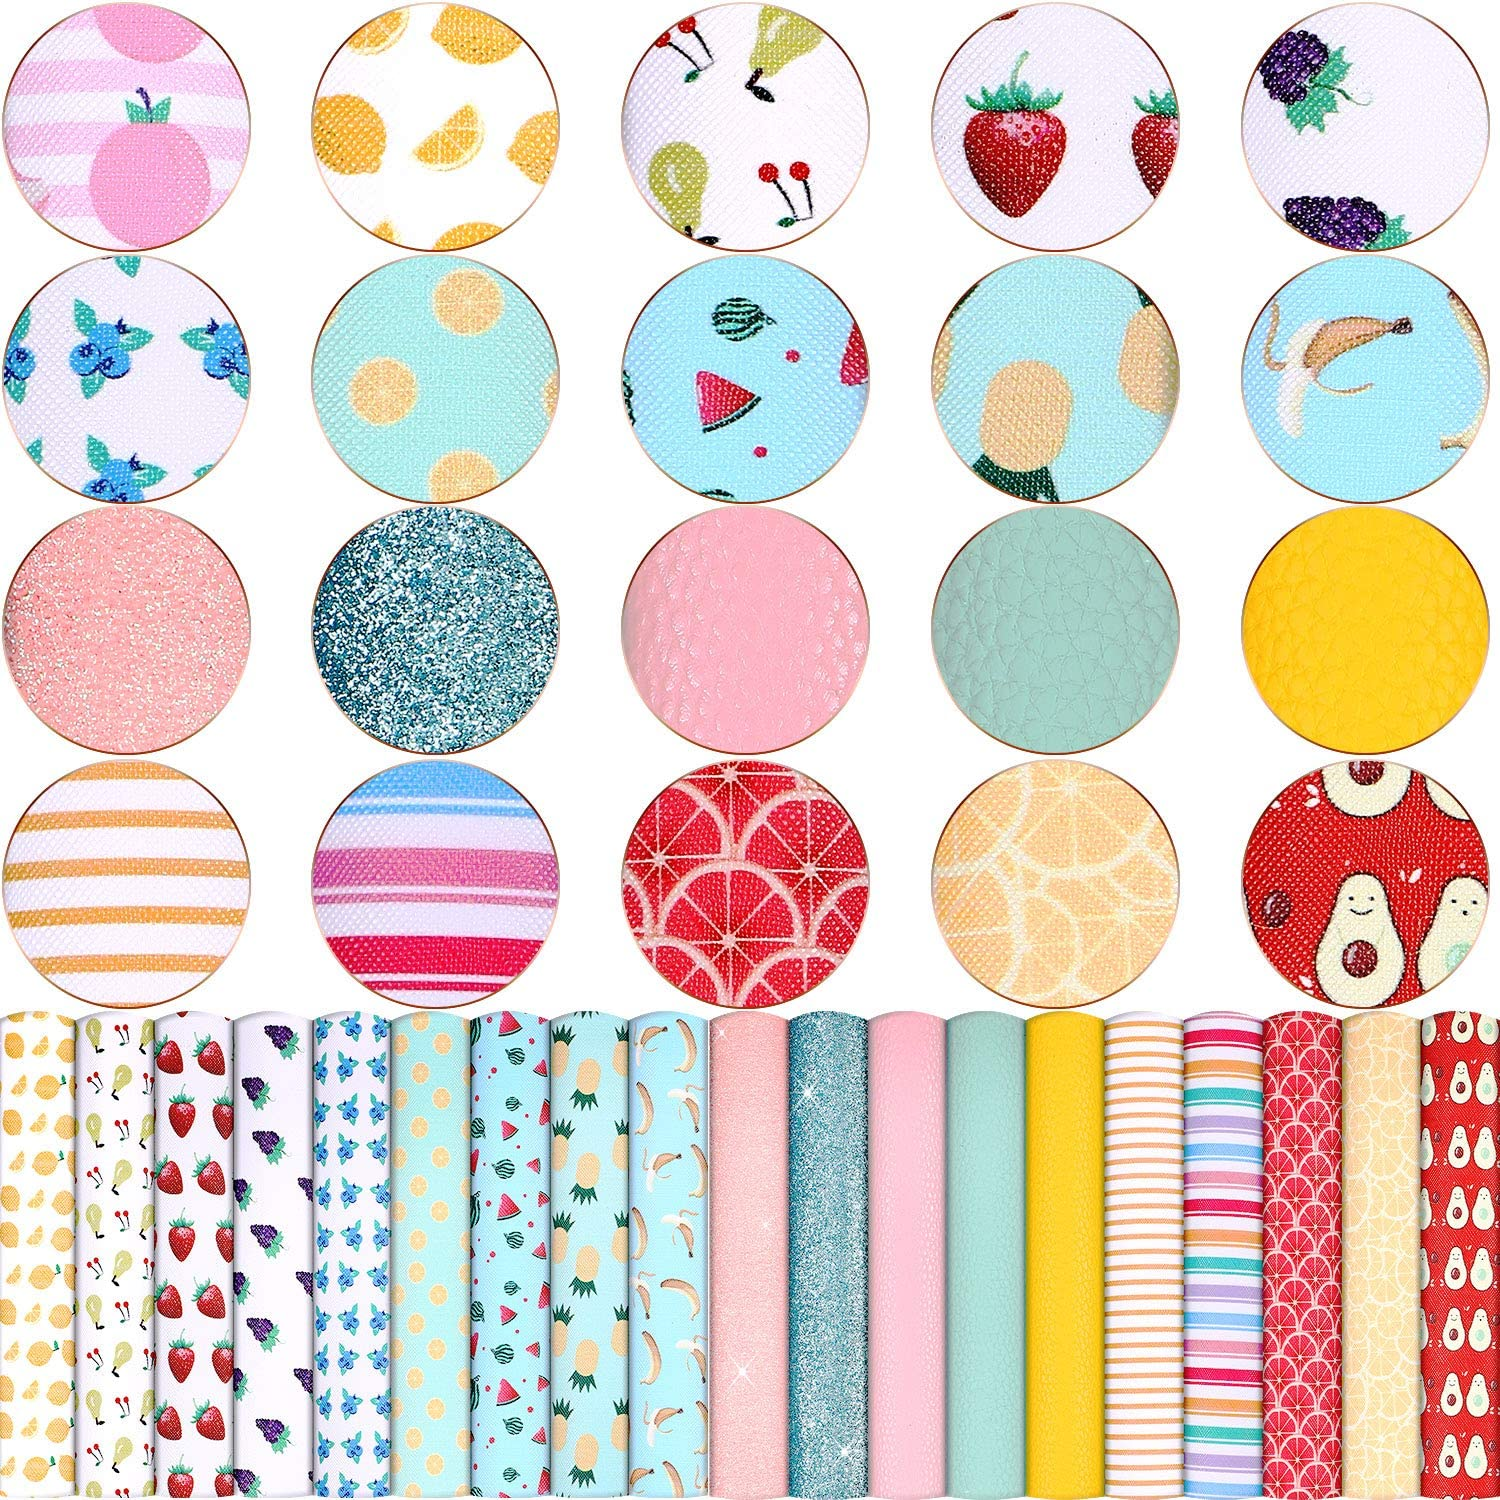 8.3 x 6.3 Inch 20 Pieces Fruit Printed Faux Leather Sheets Fruit Pattern Glitter Artificial Leather Sheets Colorful PU Faux Leather Fabric Sheet for DIY Earrings Hair Bows and Craft Making